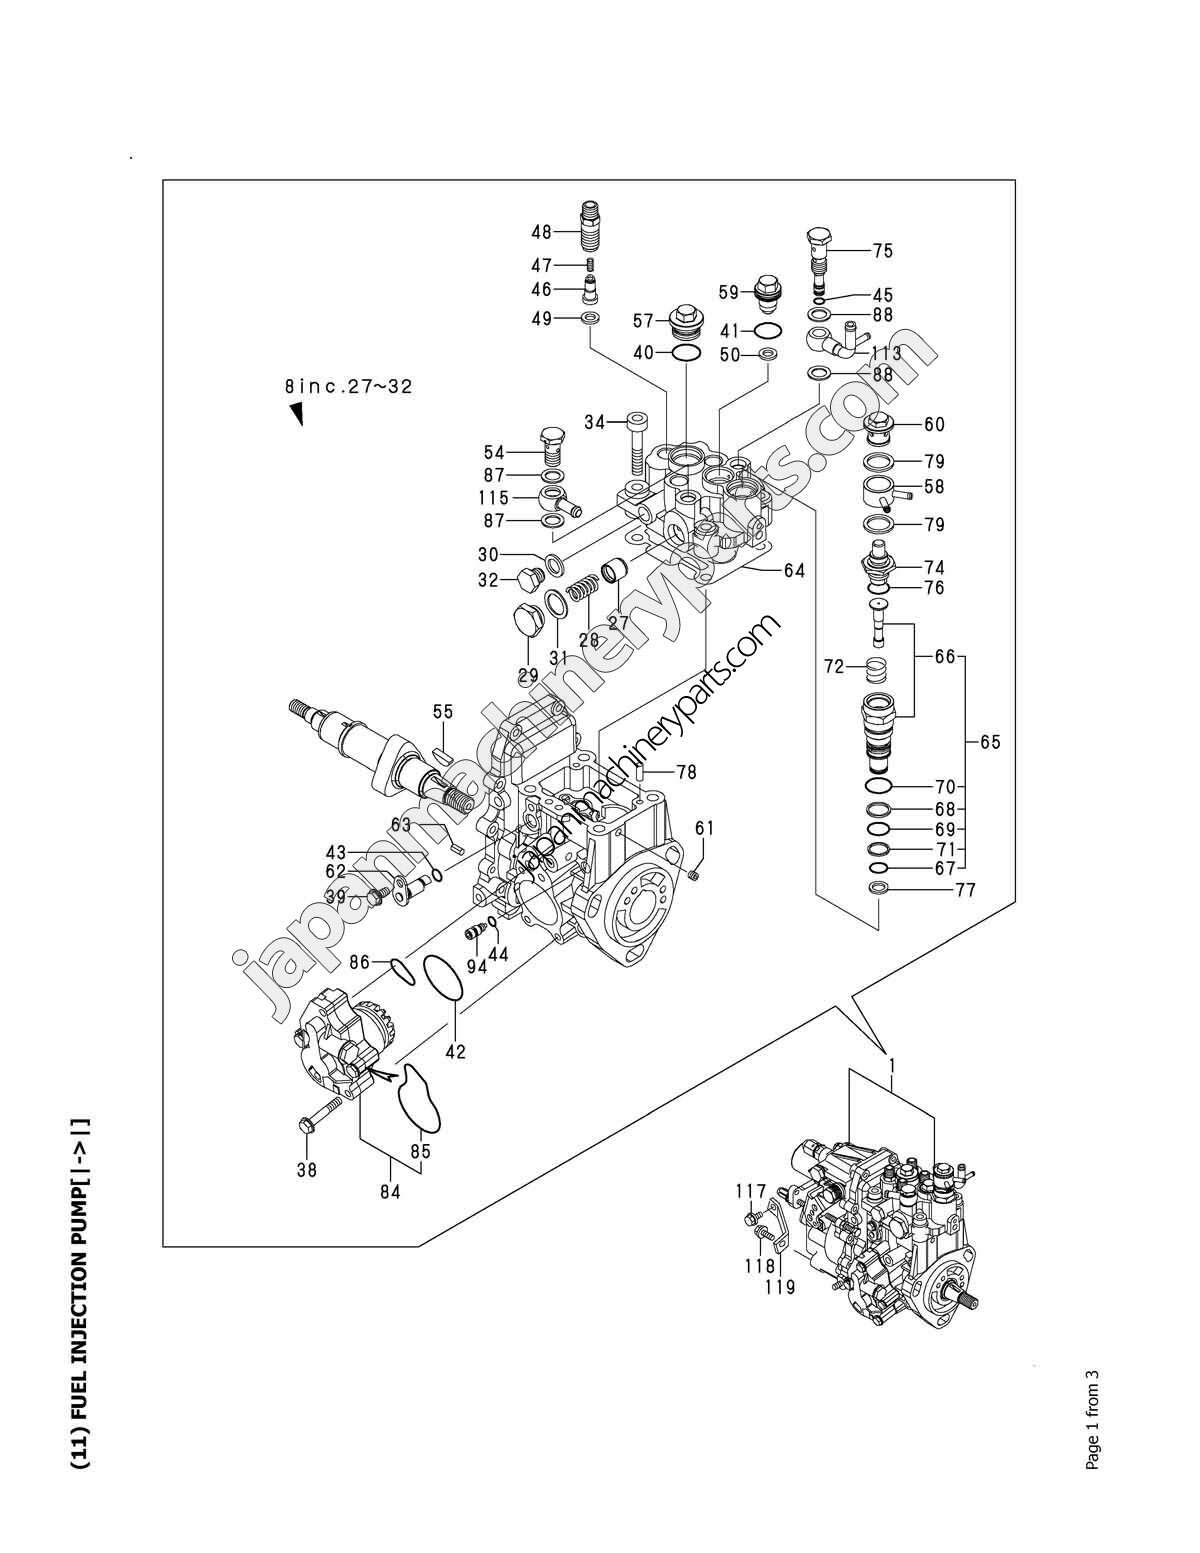 Yanmar Injector Pump Diagram Injection Wiring Fuel Example Electrical U2022 Manual Parts For